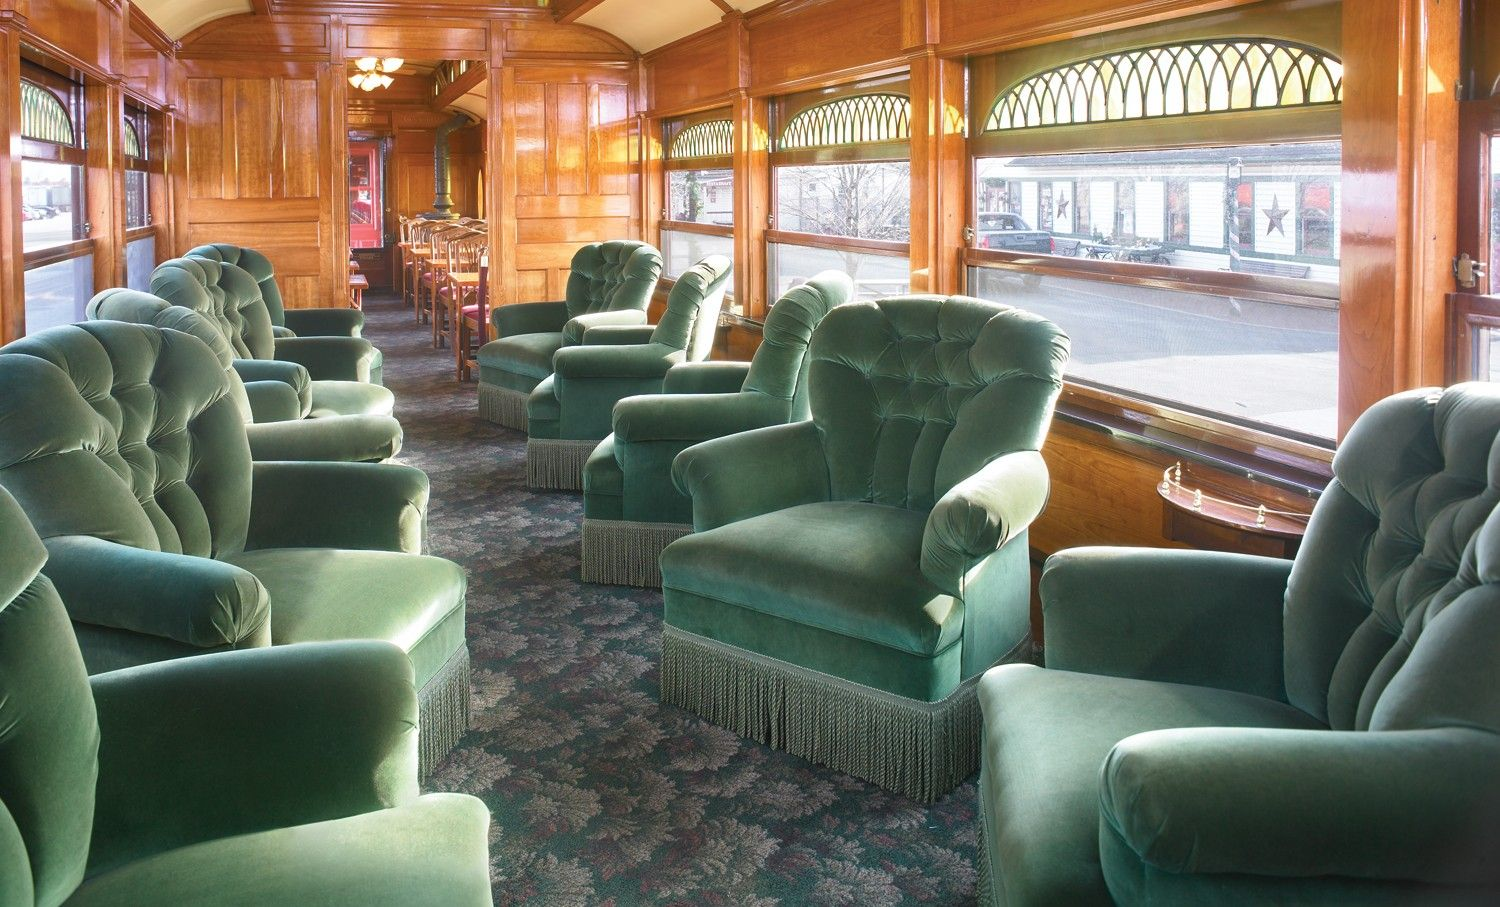 Groovy Strasburg Railroad First Class Lounge Car Featuring Soft Pdpeps Interior Chair Design Pdpepsorg